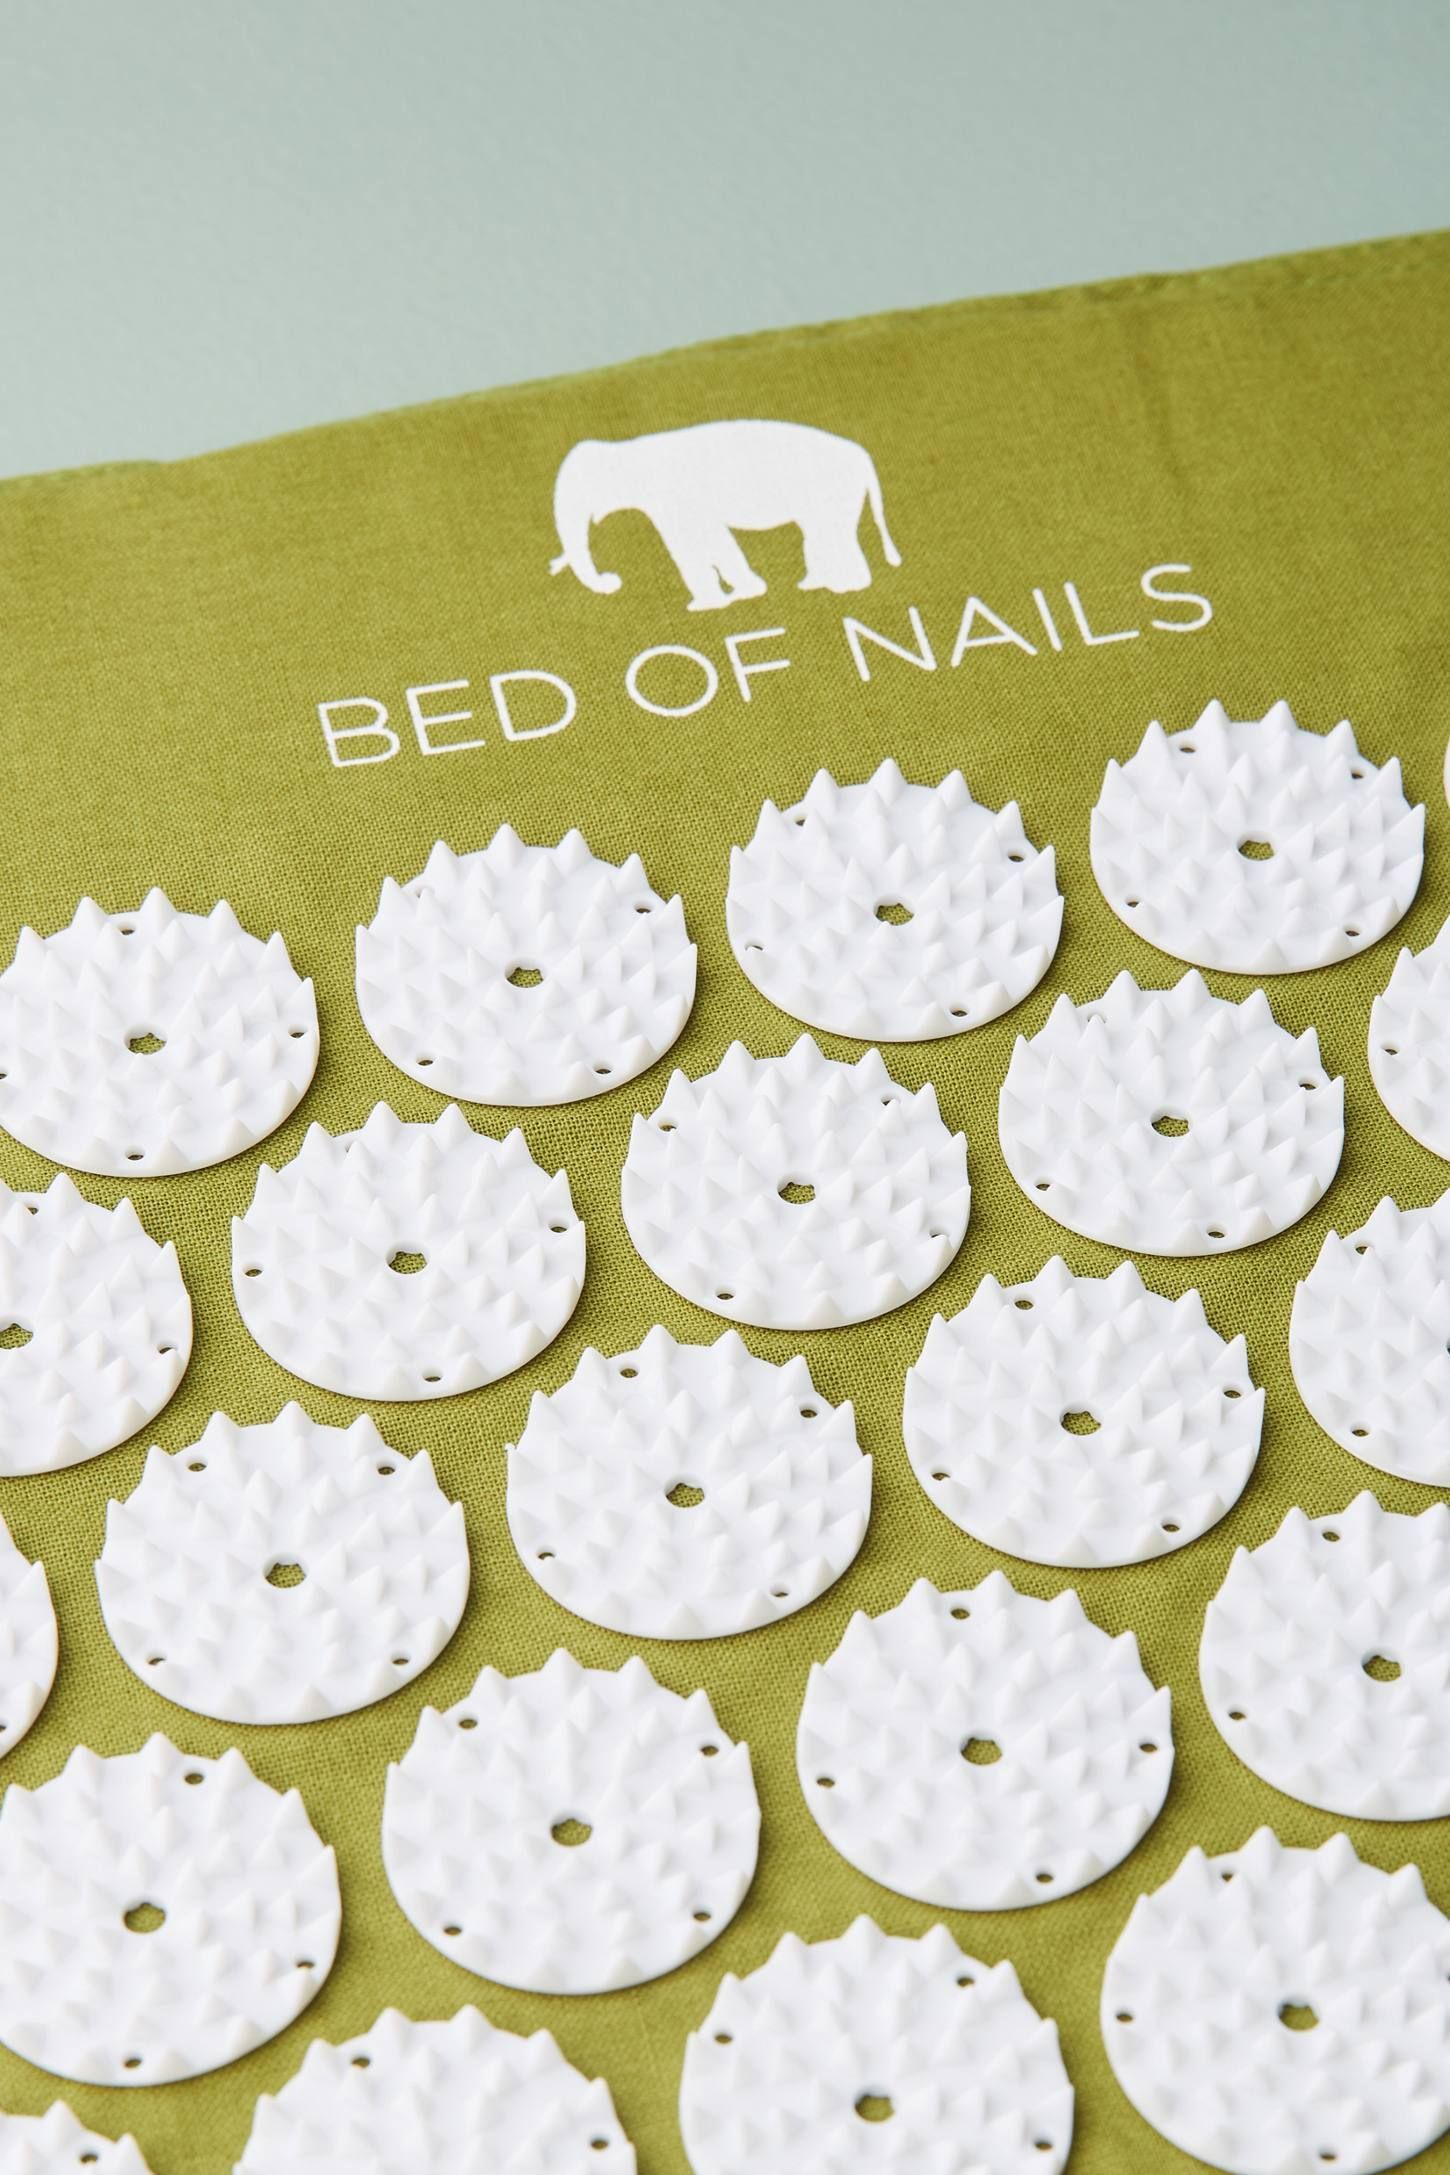 Bed of Nails Mat (With images) Bed of nails, Acupressure